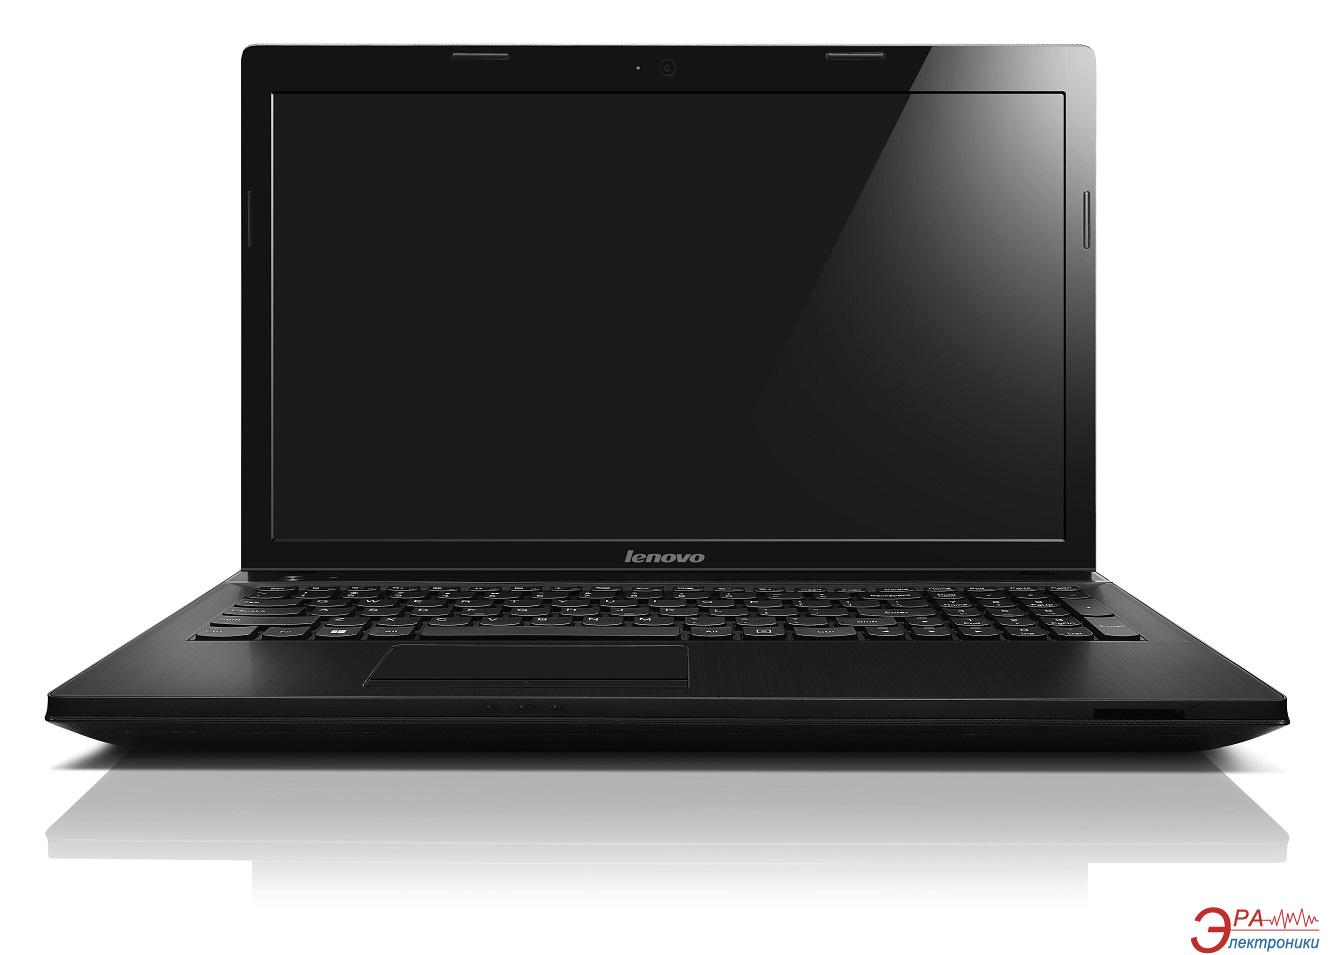 Ноутбук Lenovo IdeaPad G510A (59-400561) Black 15,6